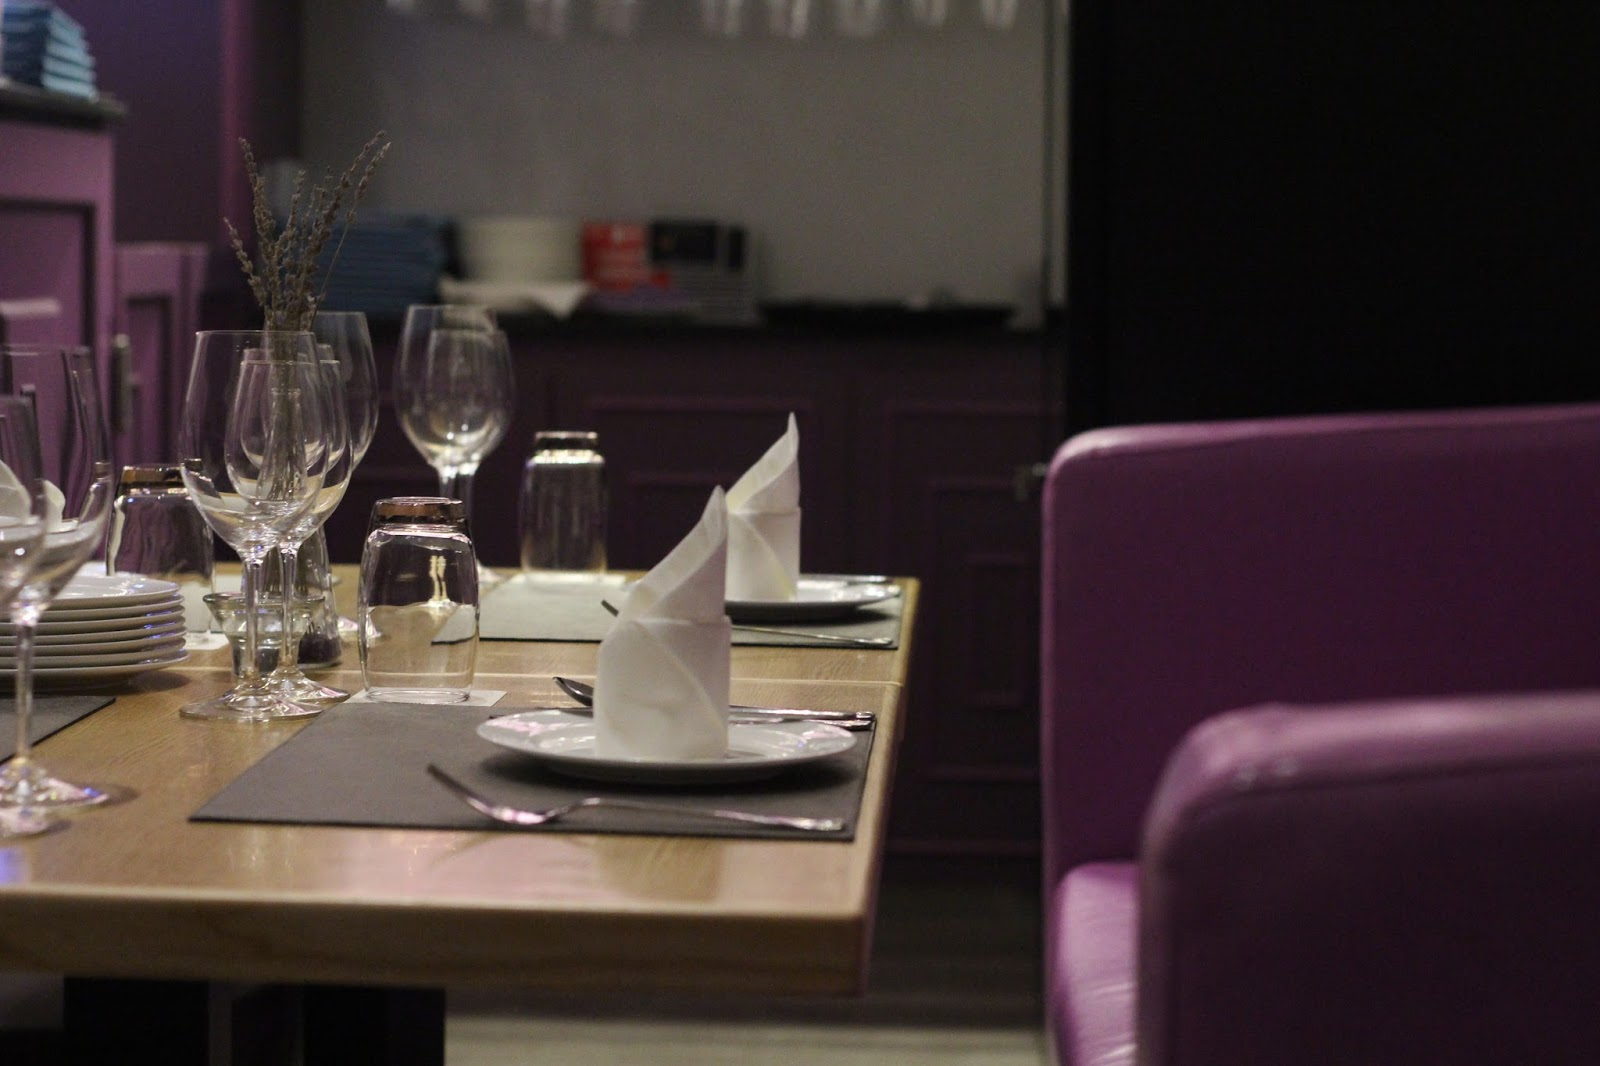 violet herbs houses a 2 storey 70 seater restaurant where the interior design surrounds the theme of comfort